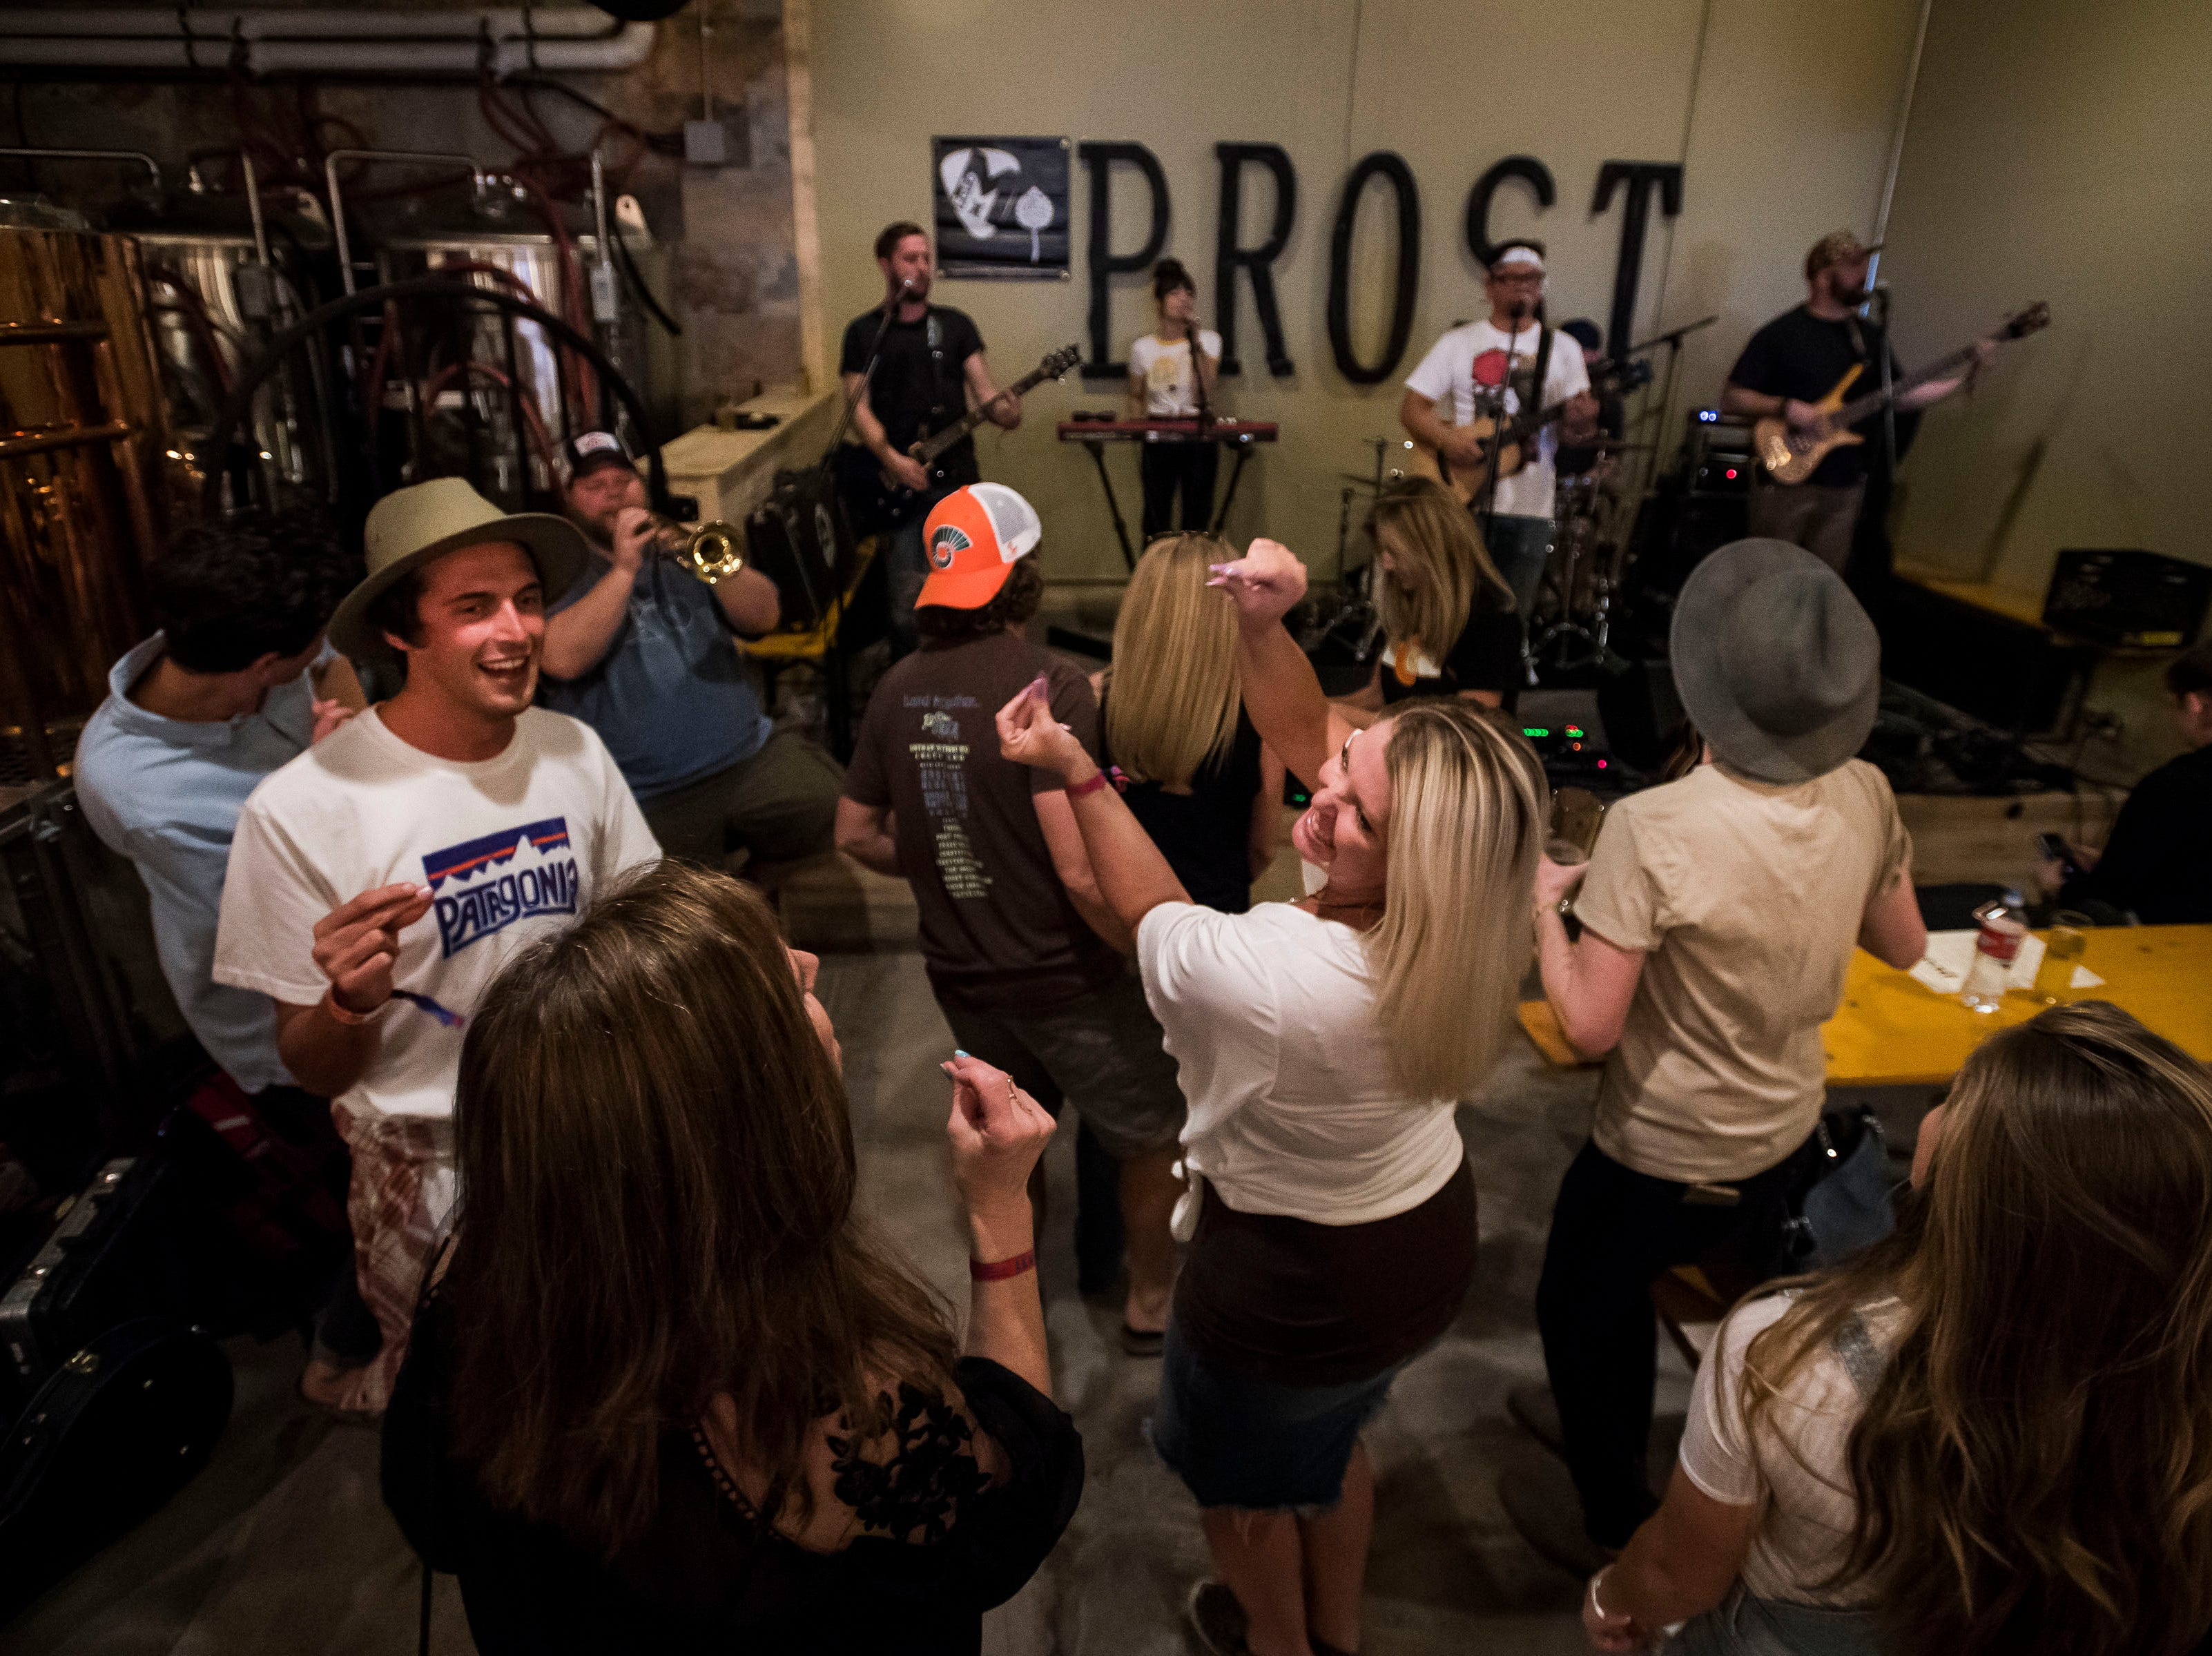 Audience member dance as Lola Rising plays at Prost Brewing Co. and Biergarten during the FoCoMX XI music festival on Friday, April 26, 2019, in Fort Collins, Colo.